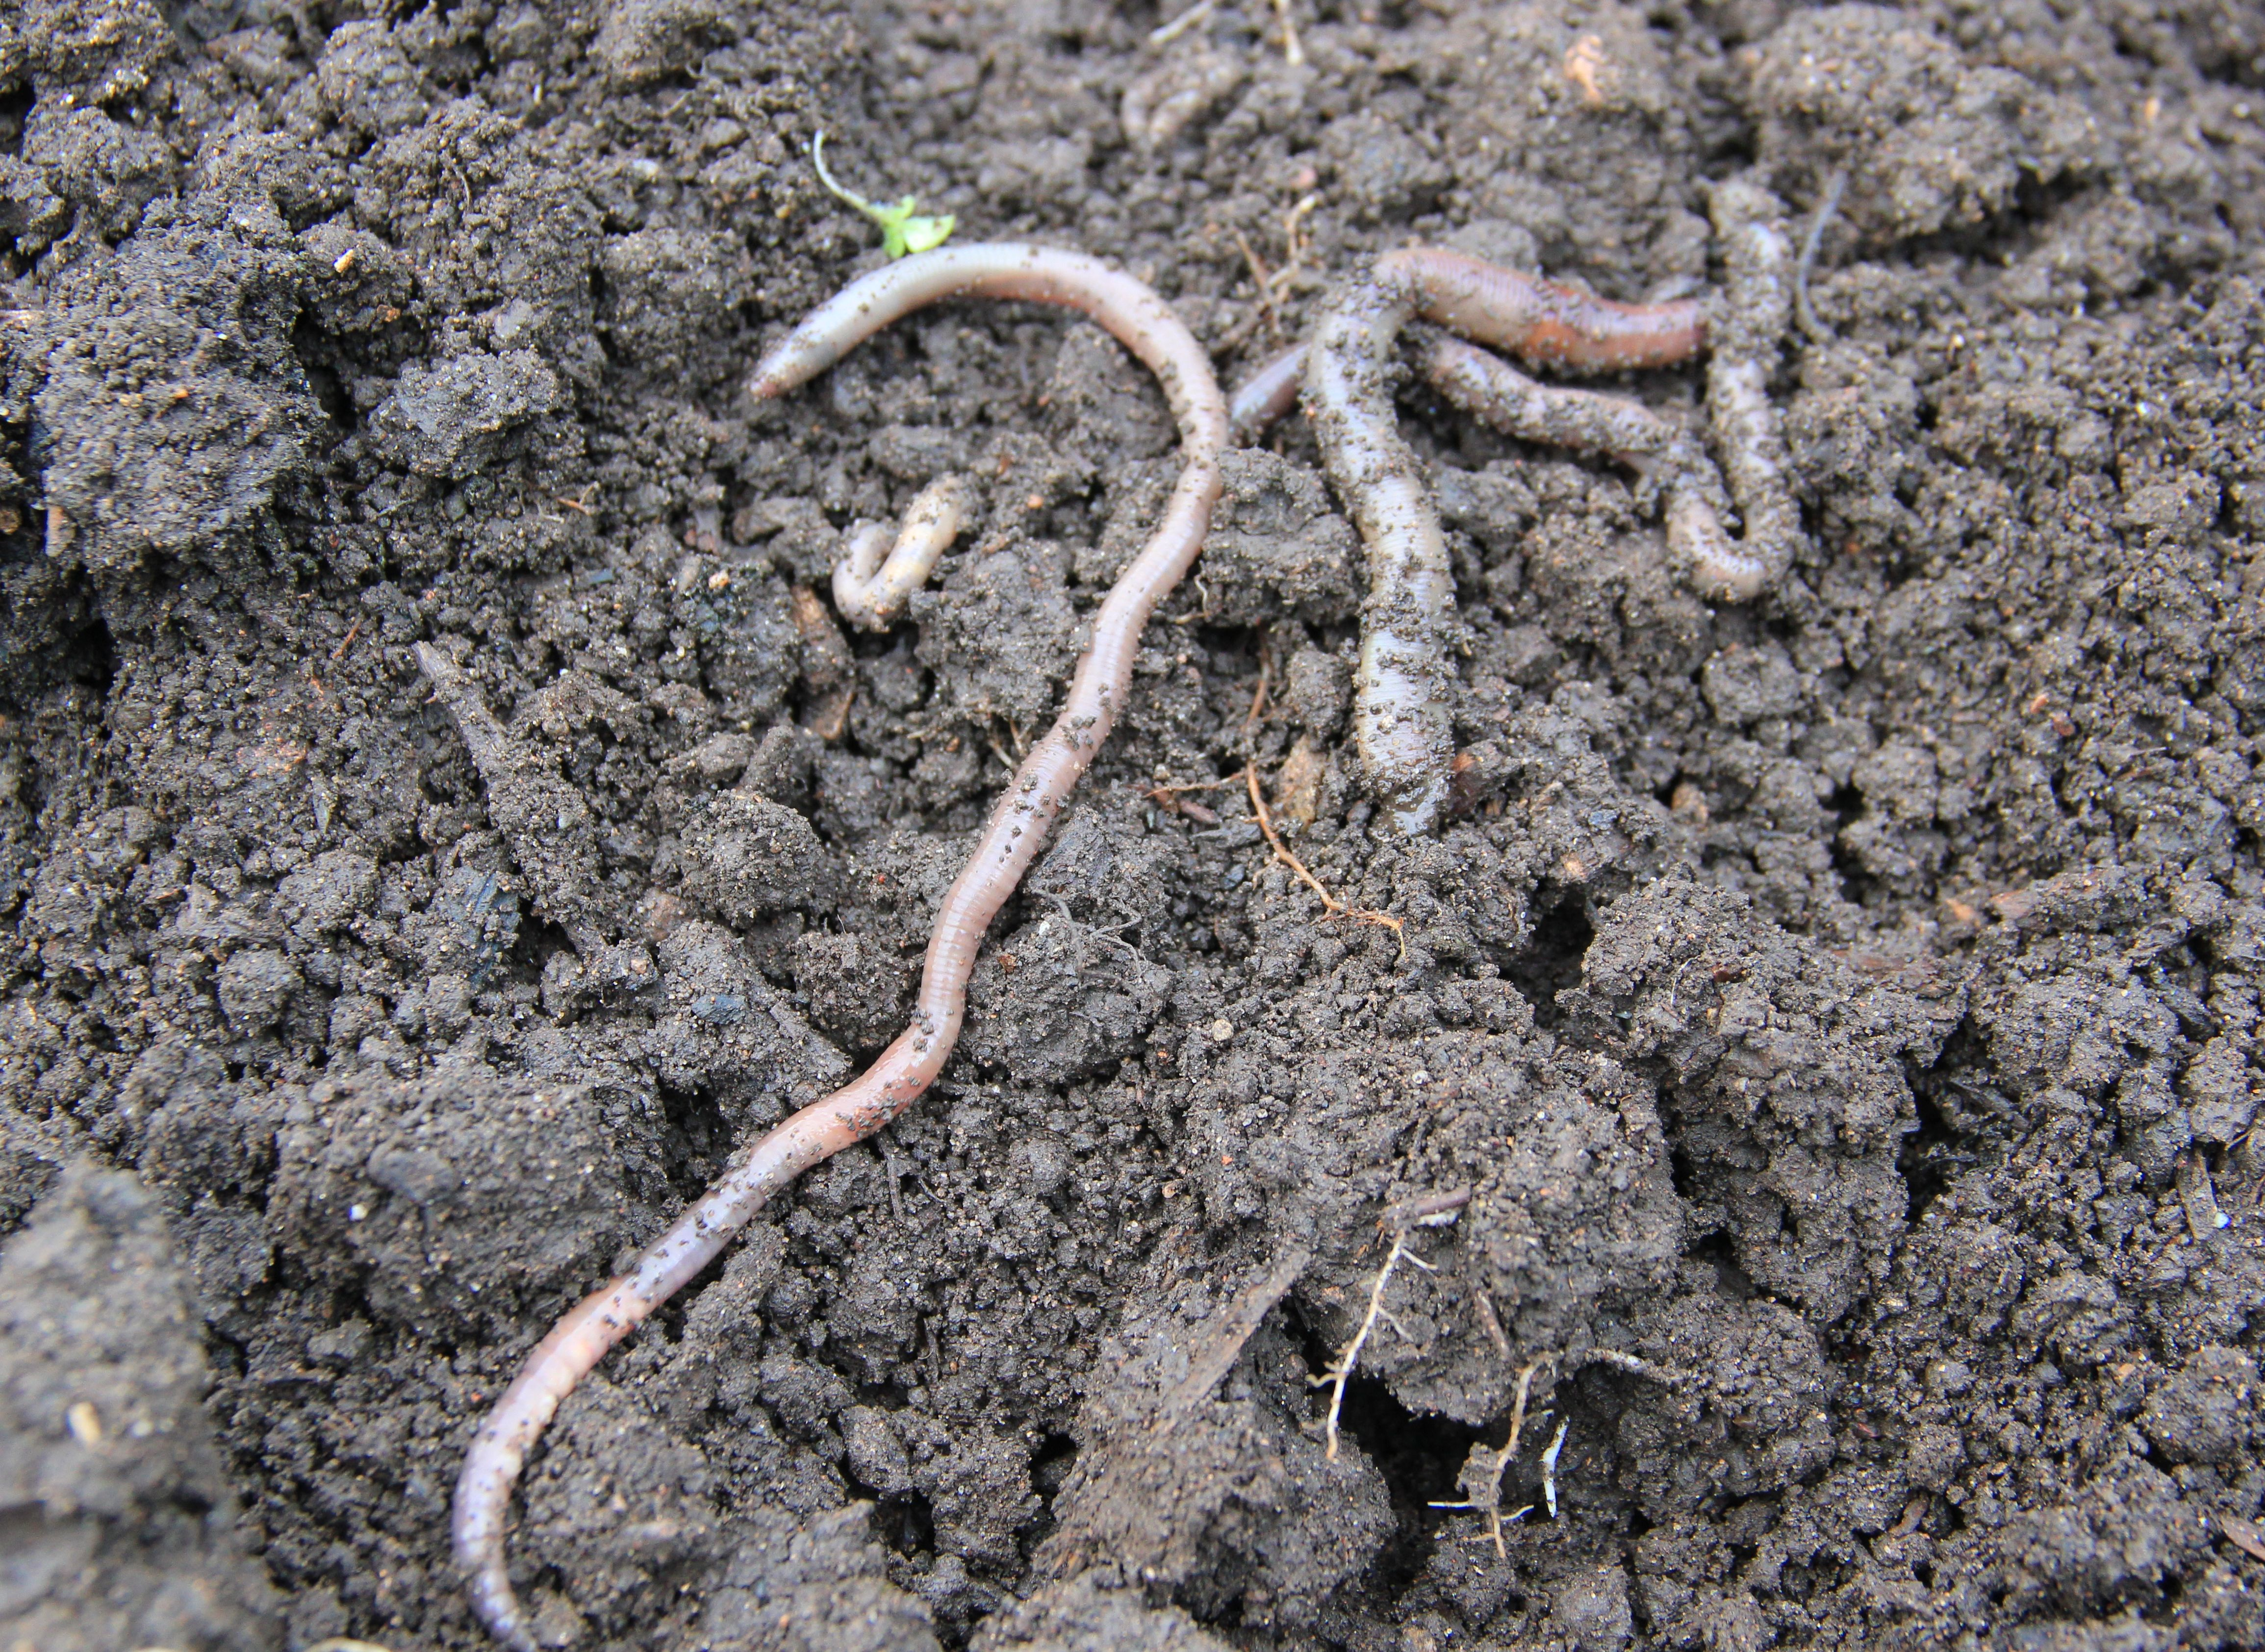 Earthworms in the soil